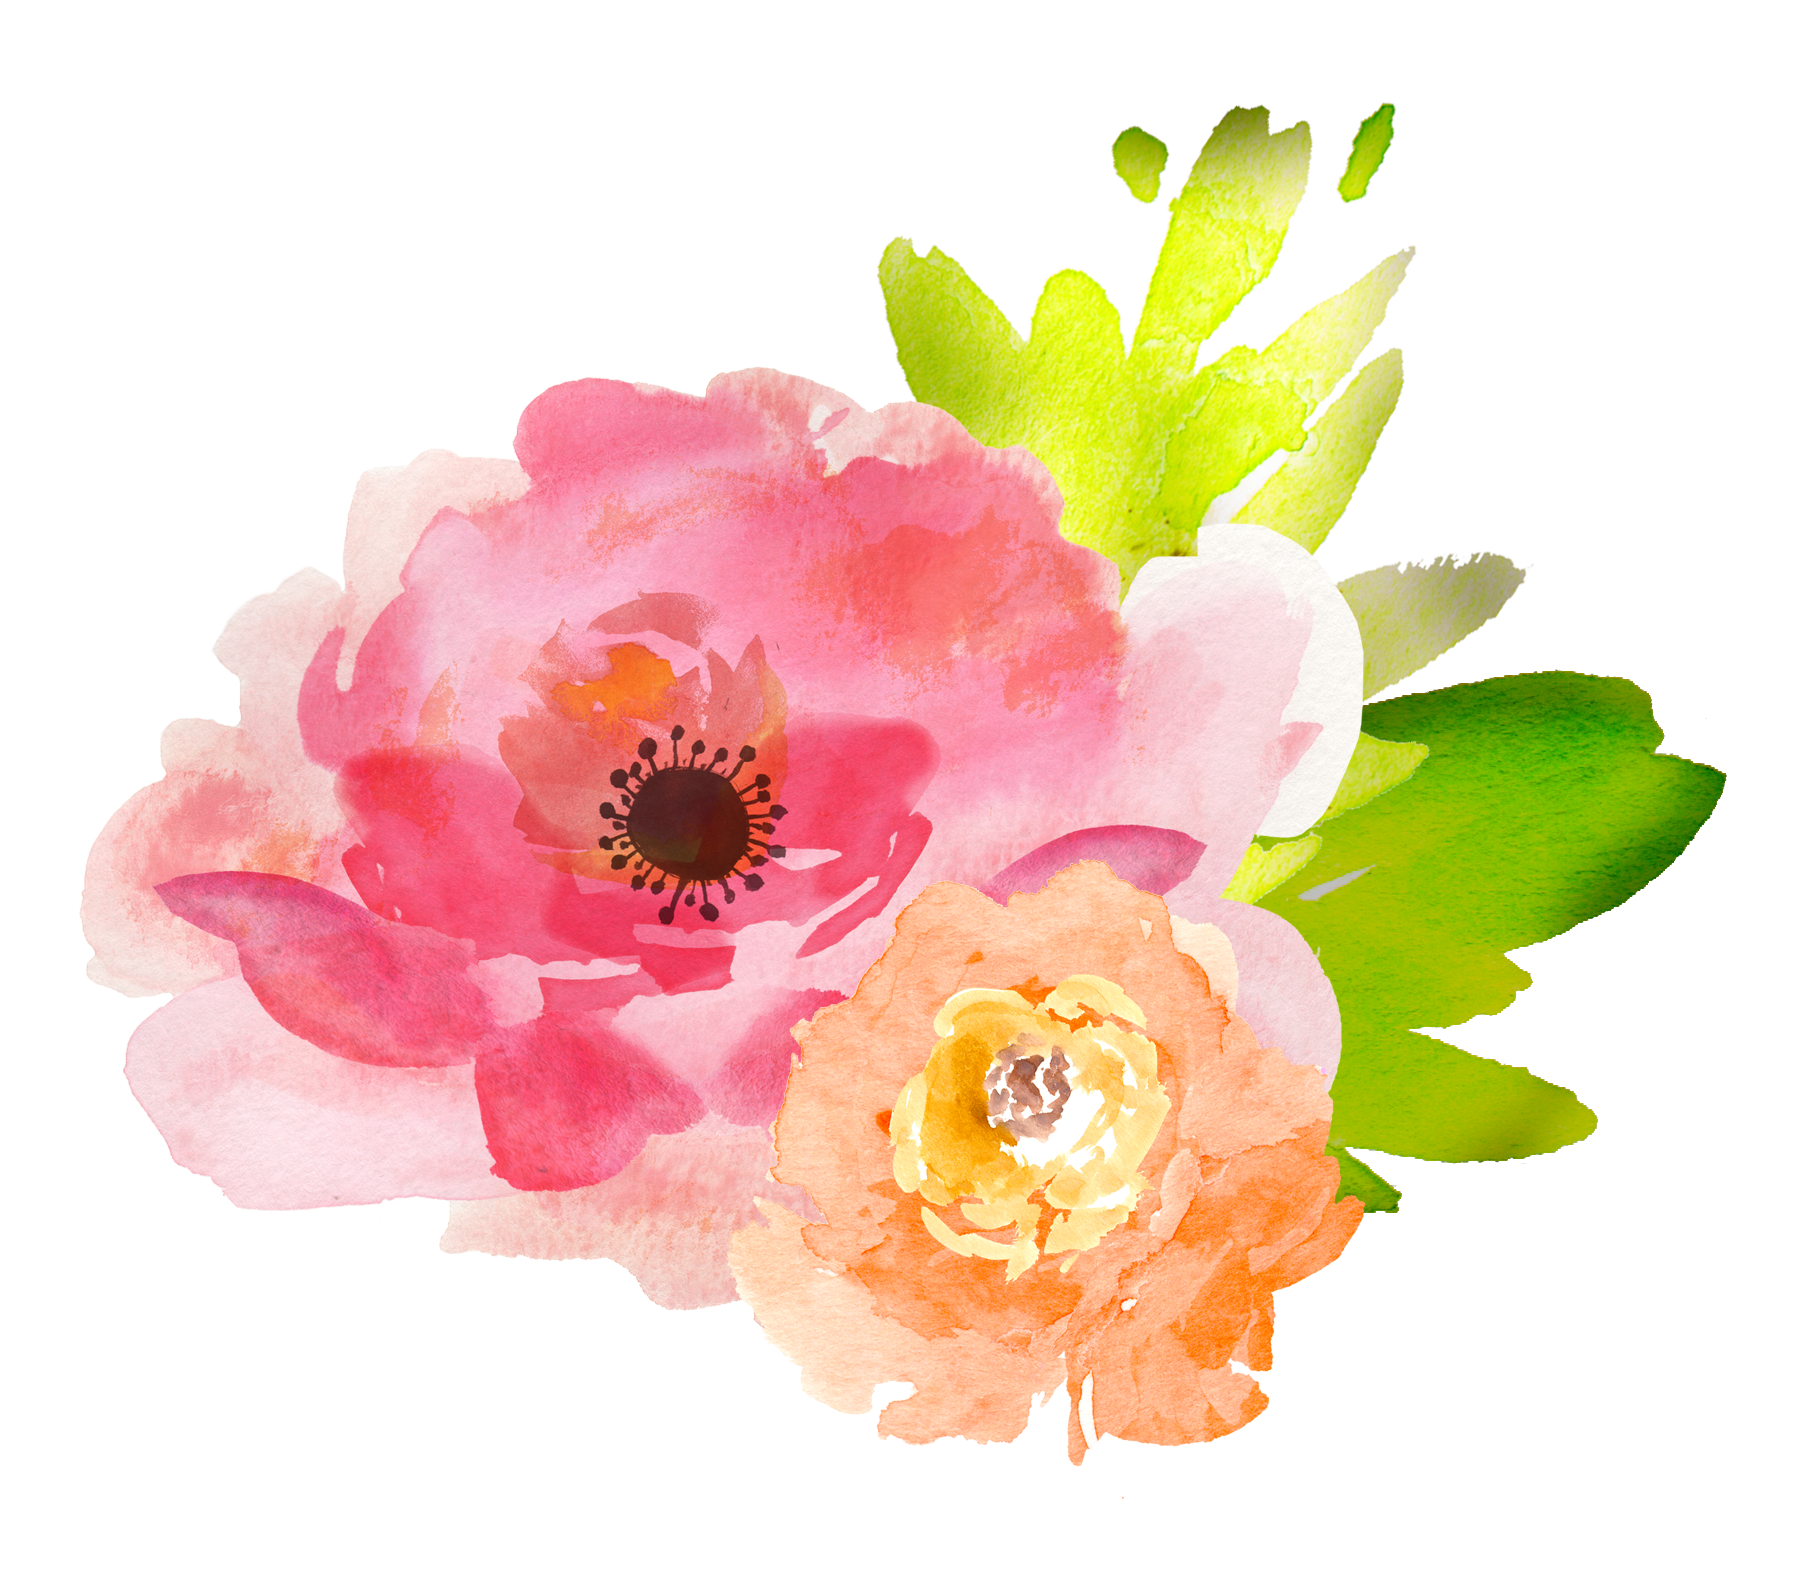 watercolor flower clipart free - photo #34